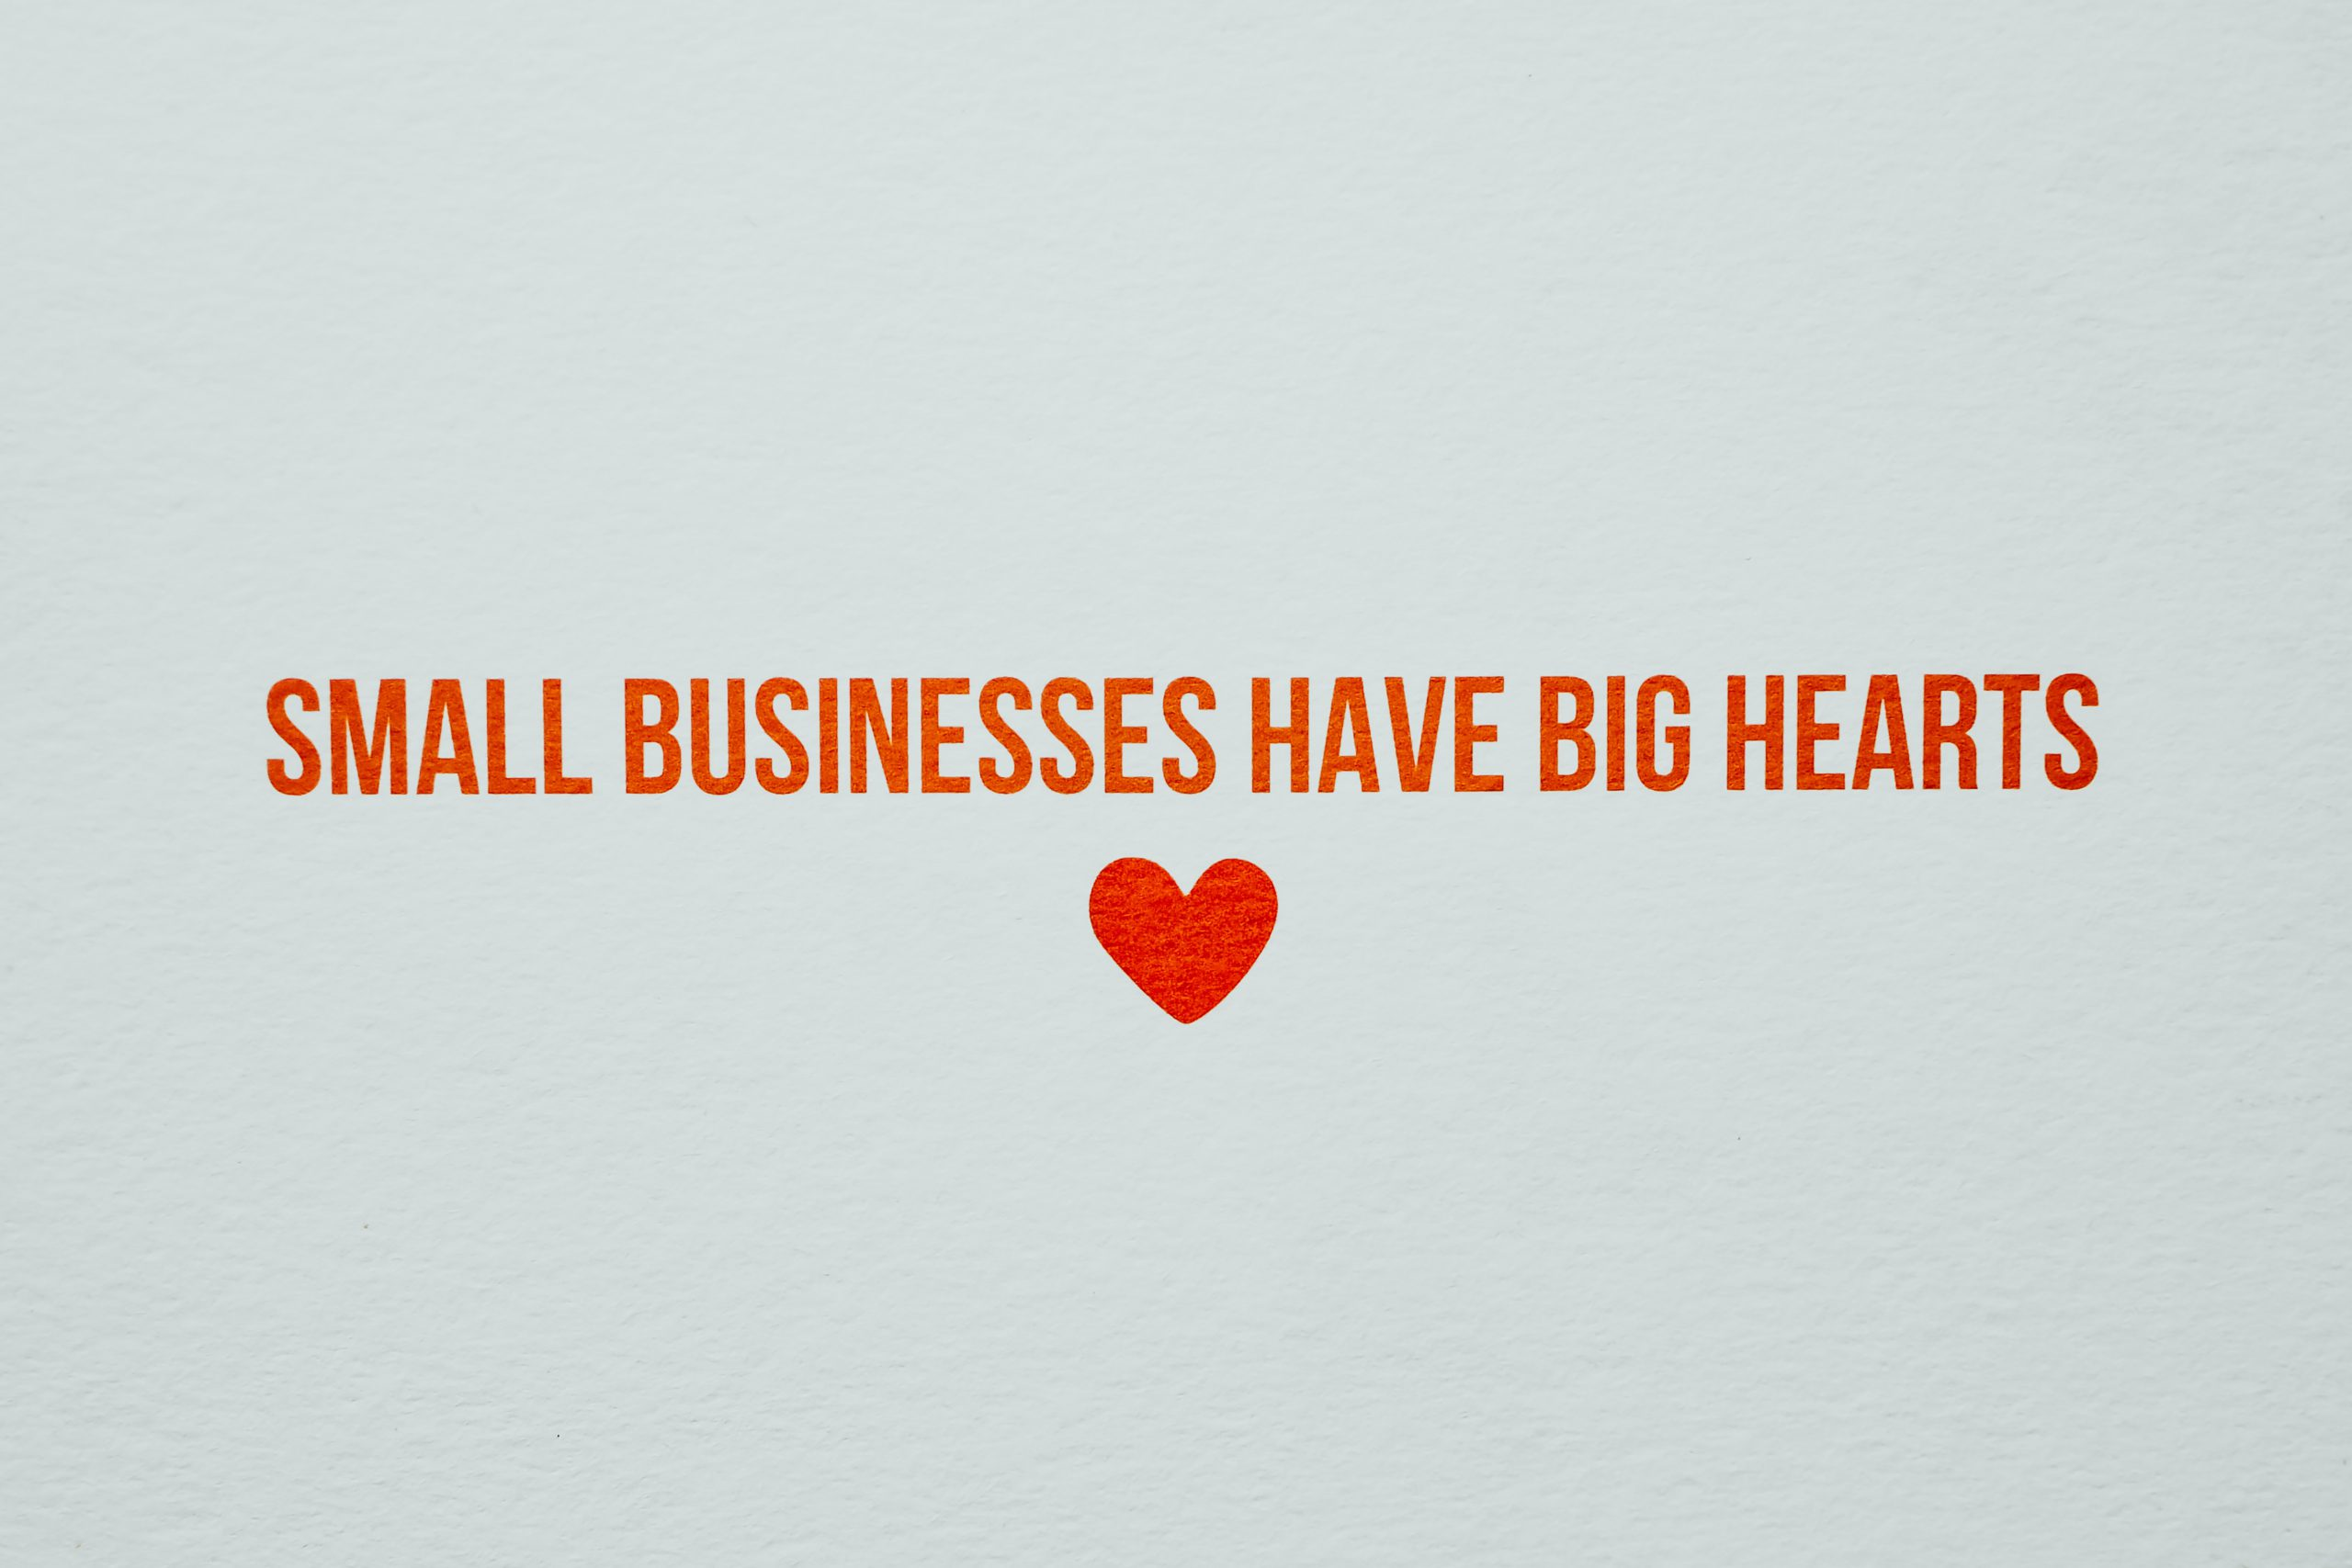 Covid-19: What Support Is Available For Small Businesses?